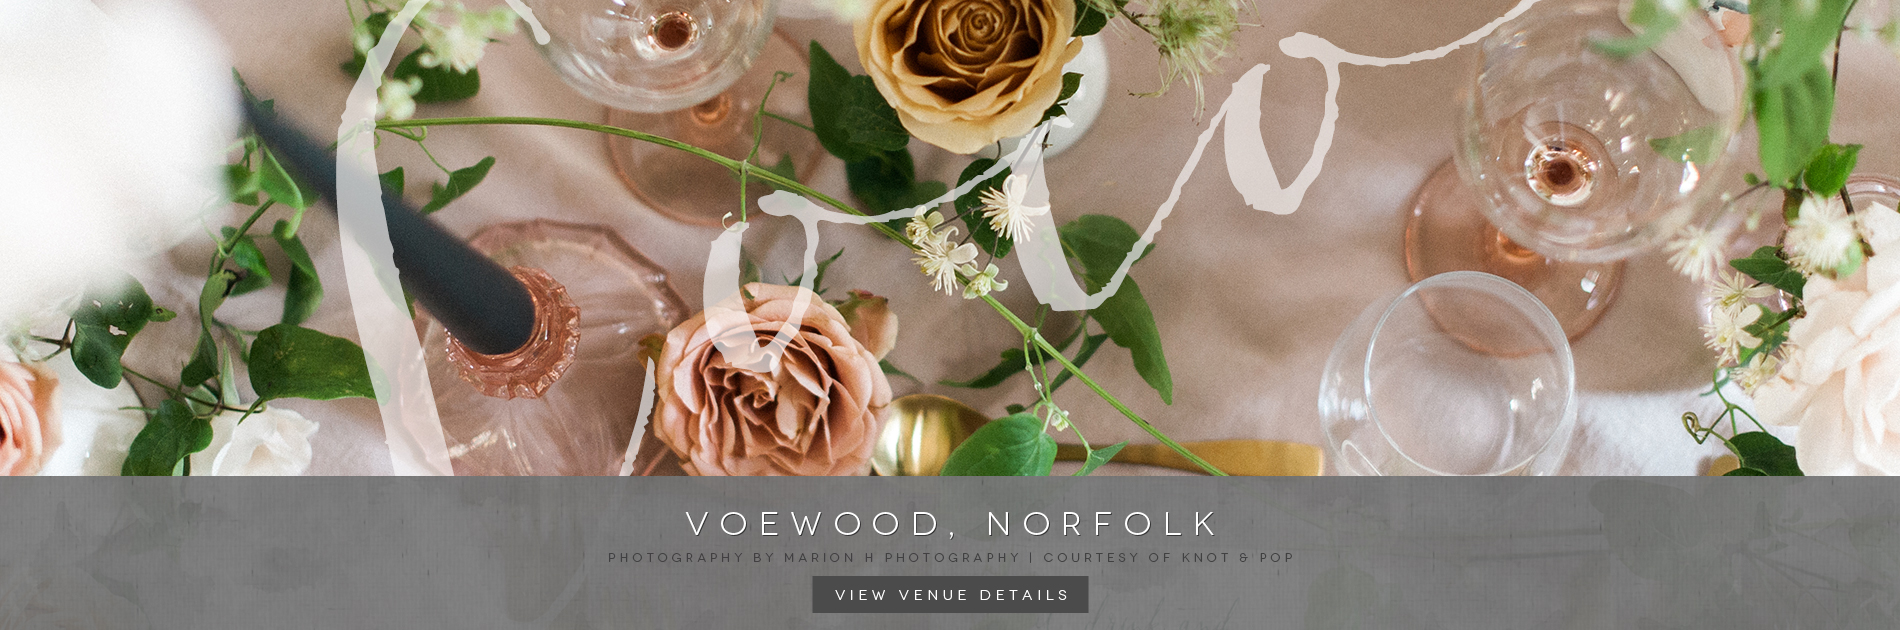 Coco wedding venues slideshow - quirky-wedding-venues-in-norfolk-voewood-january-2016